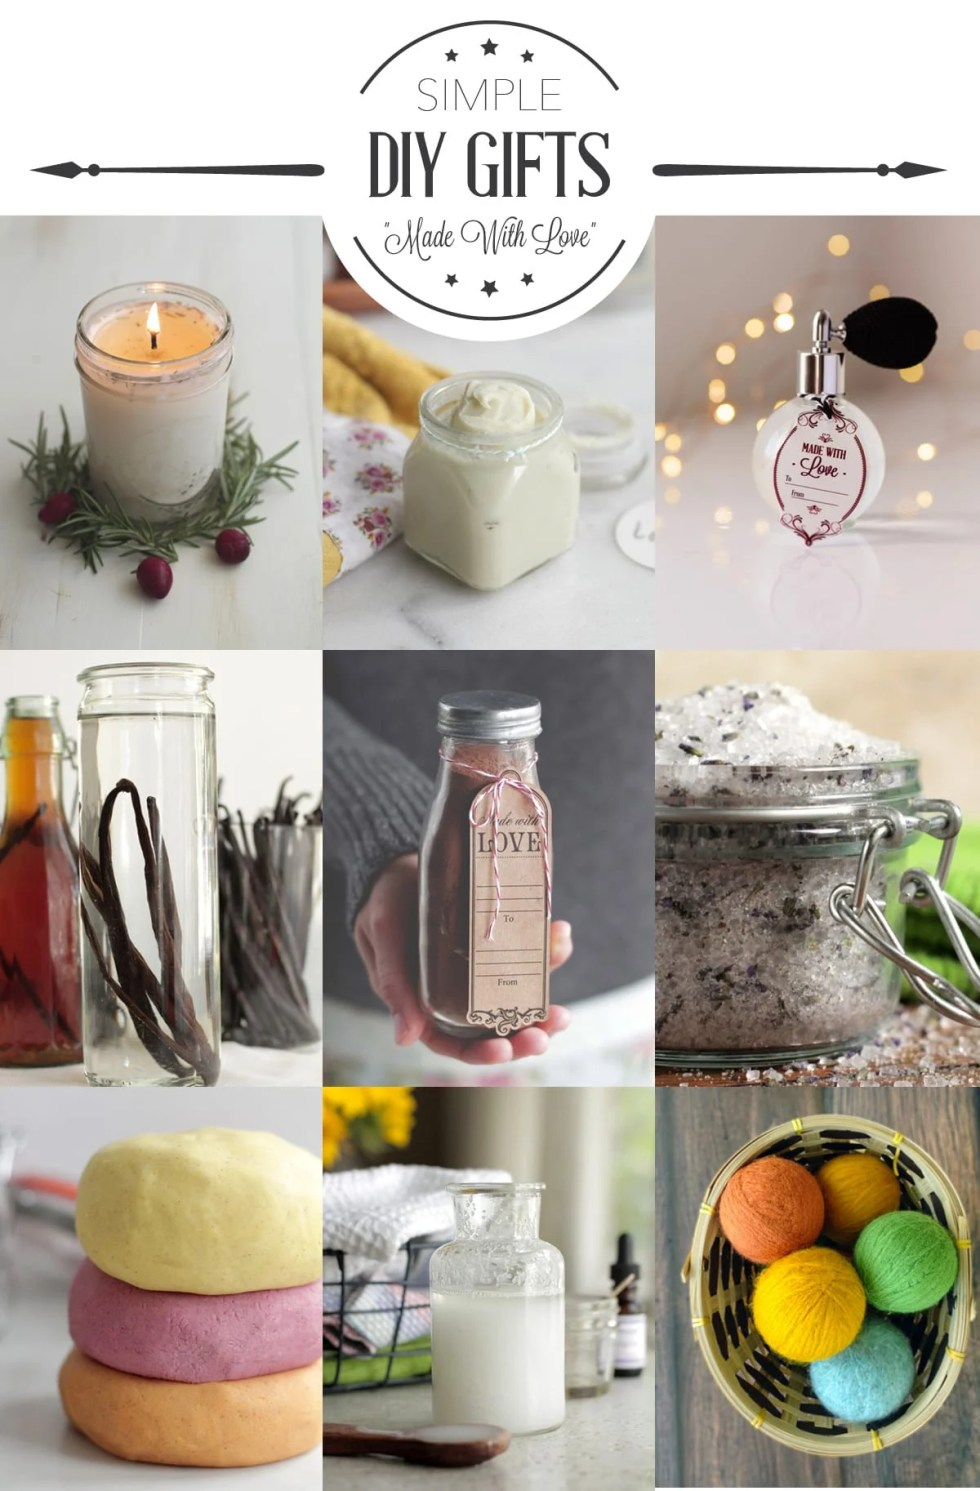 11 Simple DIY Gift Ideas - Live Simply